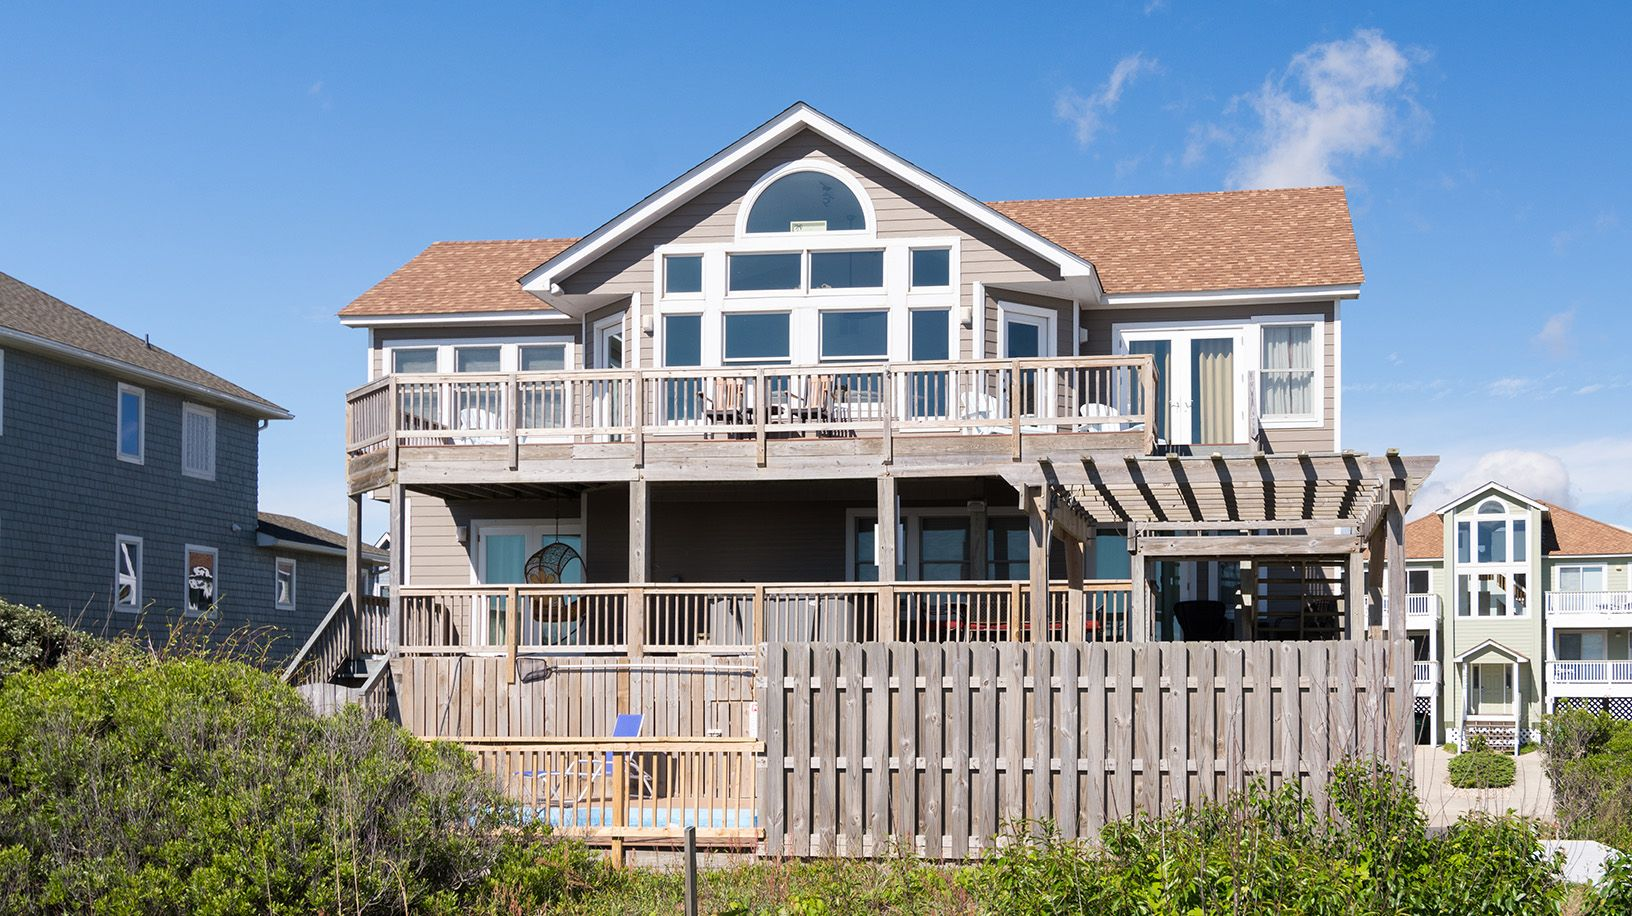 Tranquilo P176 is an Outer Banks Oceanfront vacation rental in